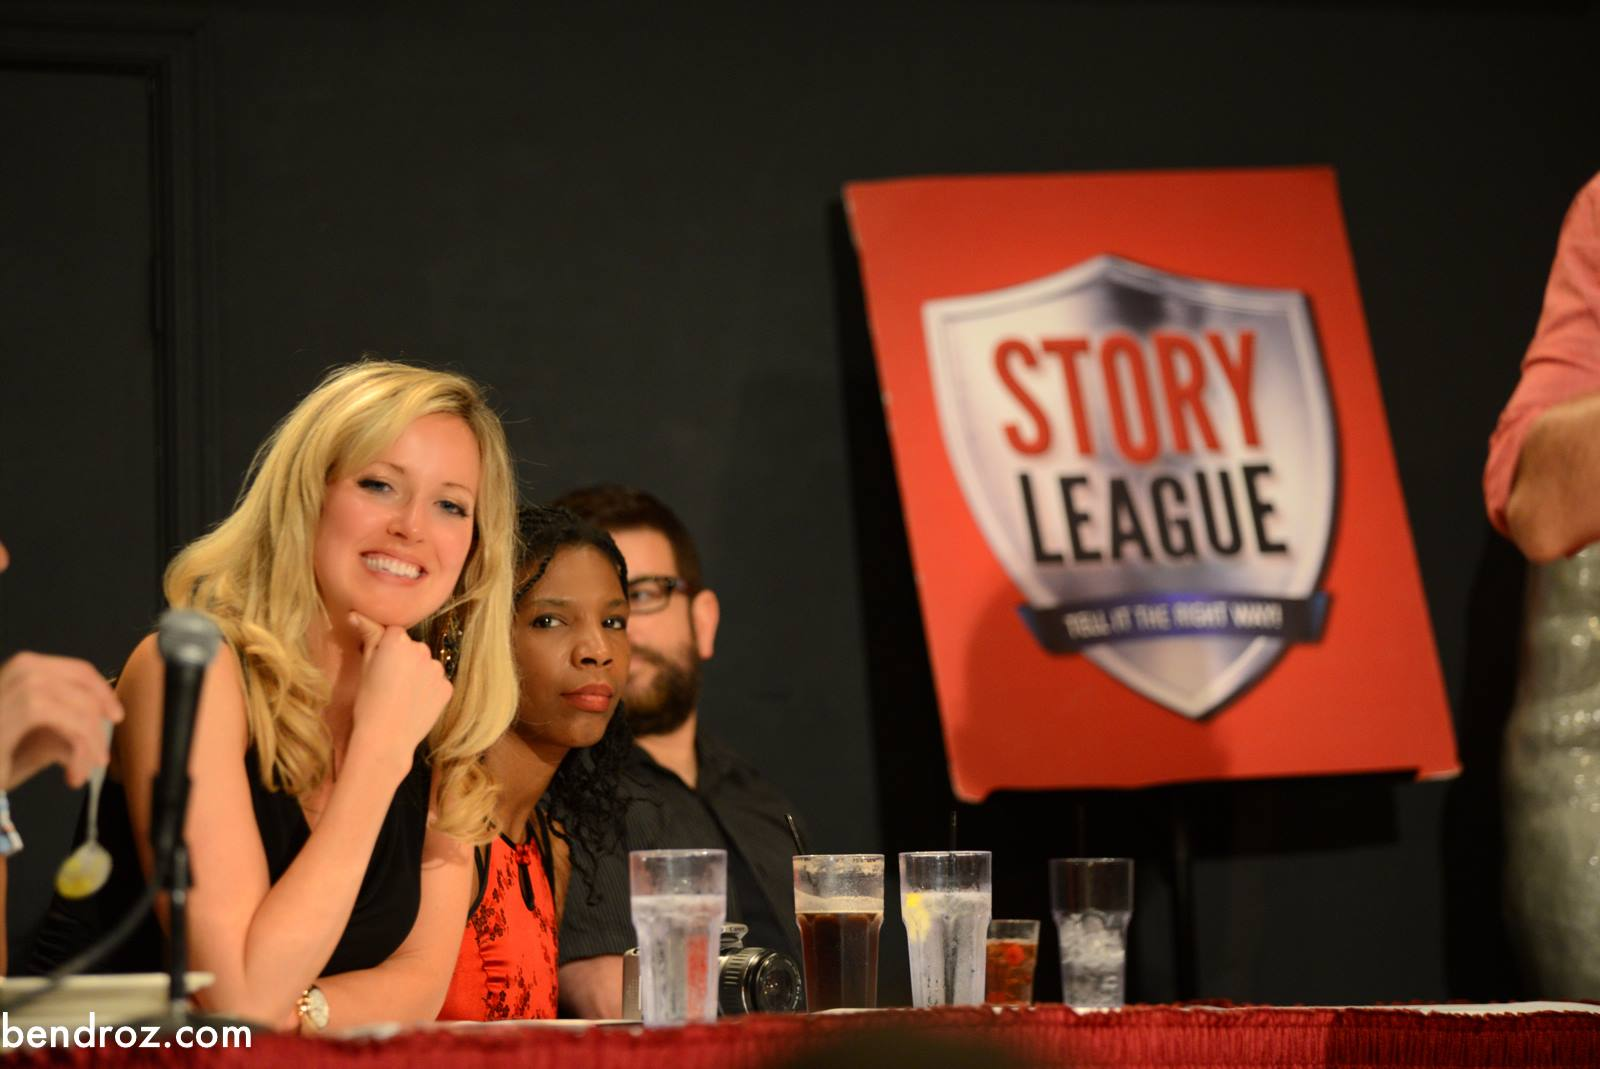 Judging A Story League Story Competition